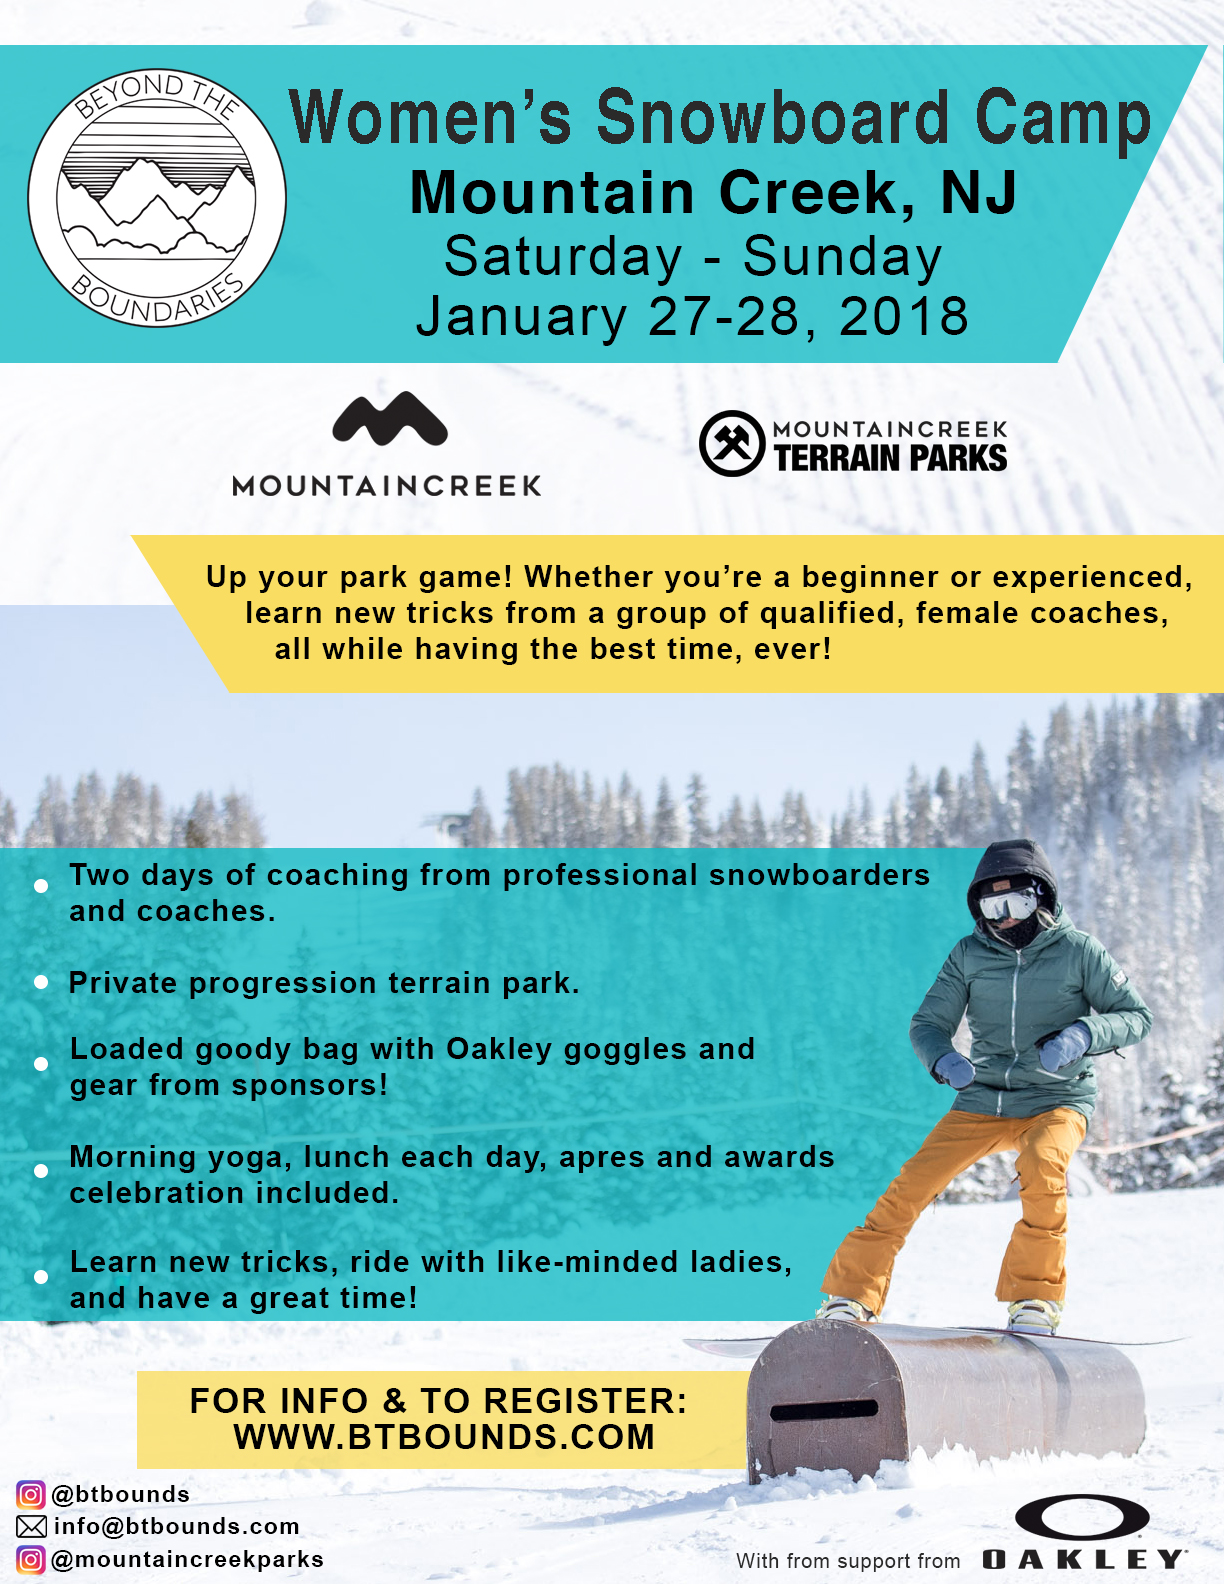 BTB-MtnCreek-flyer-Dec17-online.jpg